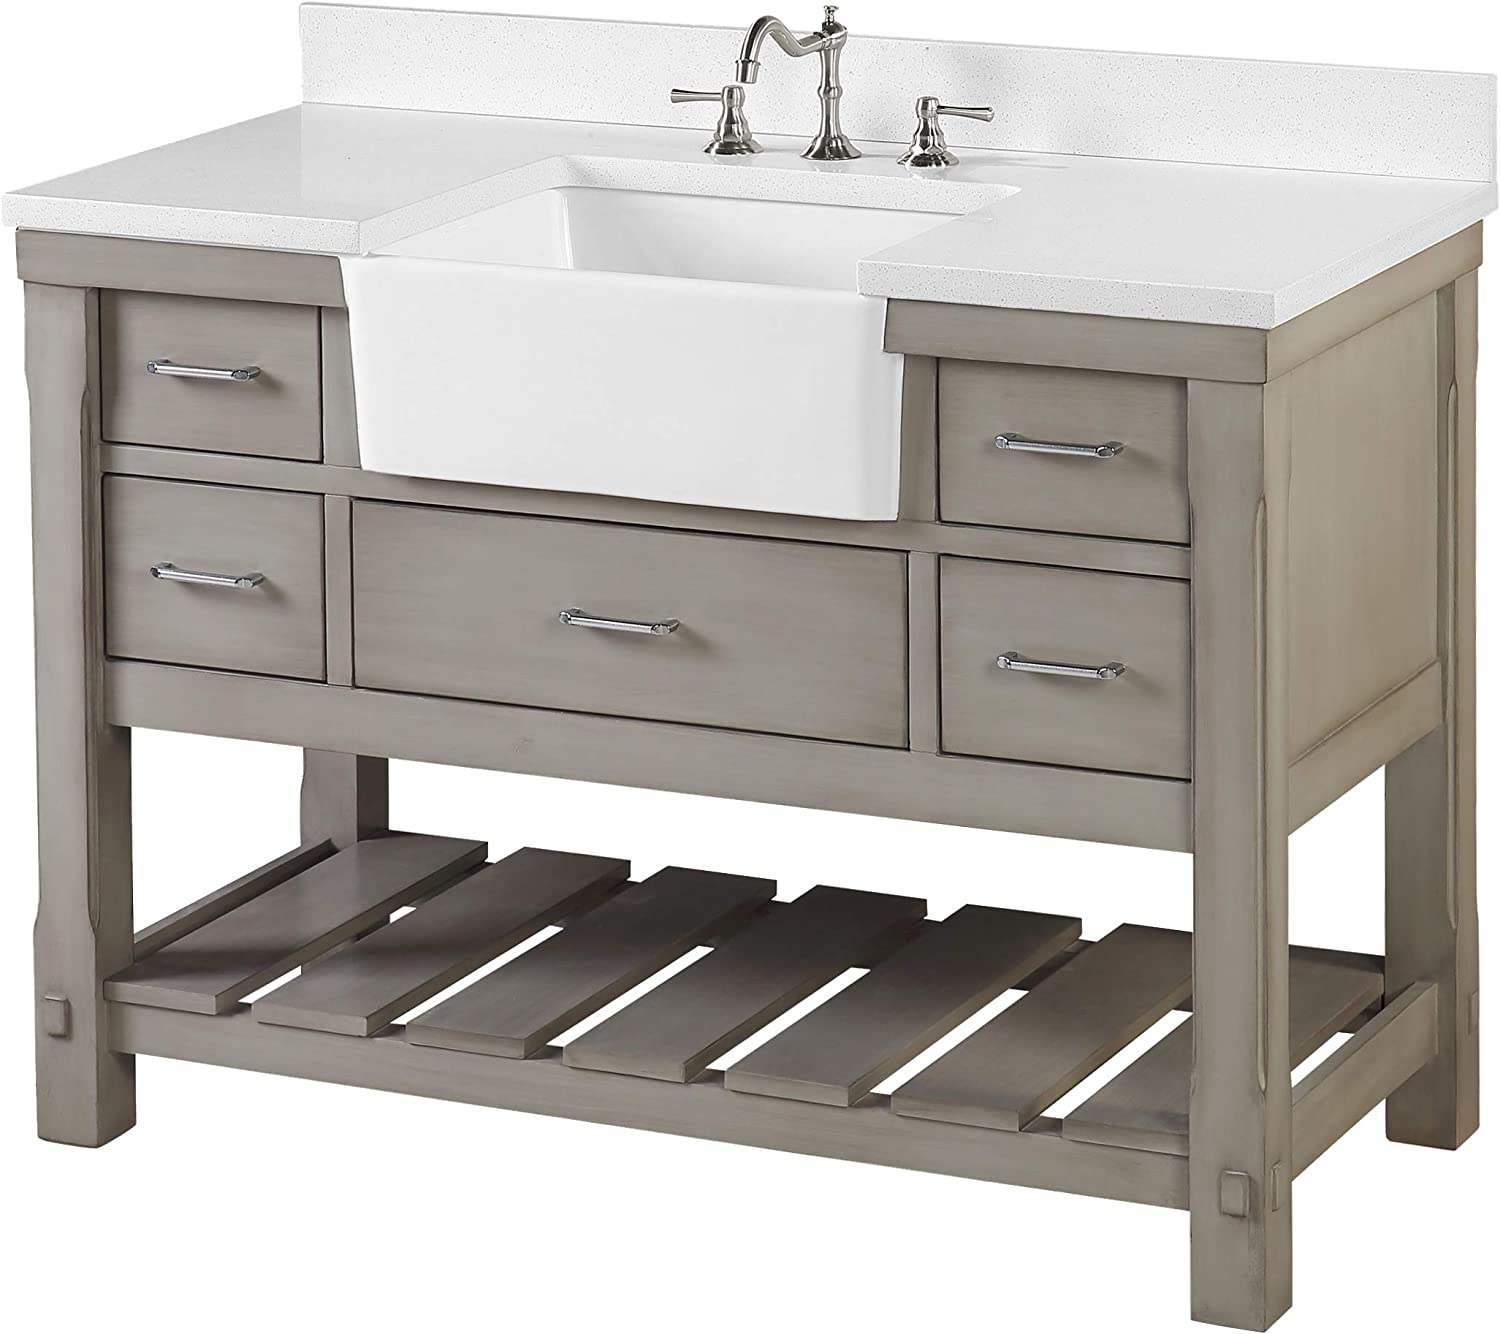 Amazon Com Charlotte 48 Inch Bathroom Vanity Quartz Weathered Gray Includes Weathered Gray Cabinet With Stunning Quartz Countertop And White Ceramic Farmhouse Apron Sink Kitchen Dining